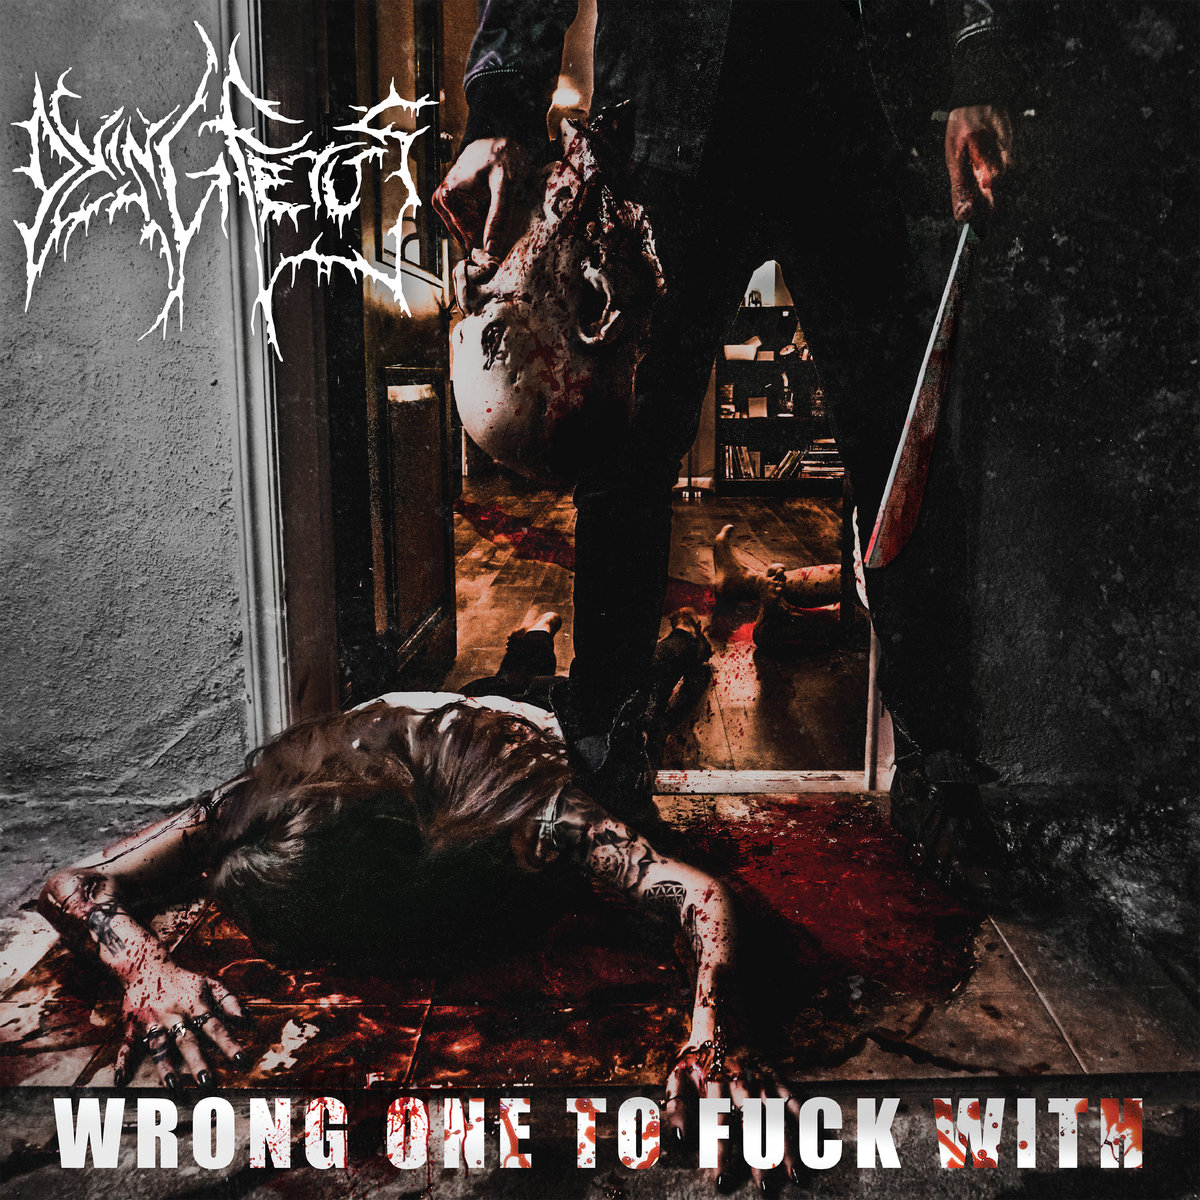 11. Dying Fetus - Wrong One to Fuck With - Nothing more to say about this than what the title says: do NOT mess with these battle-scarred veterans; they are at their peak performance. If you're a fan of anything even remotely close to death metal, there is no reason you will not enjoy this blisteringly fast, incredibly technical, and downright groovy album.